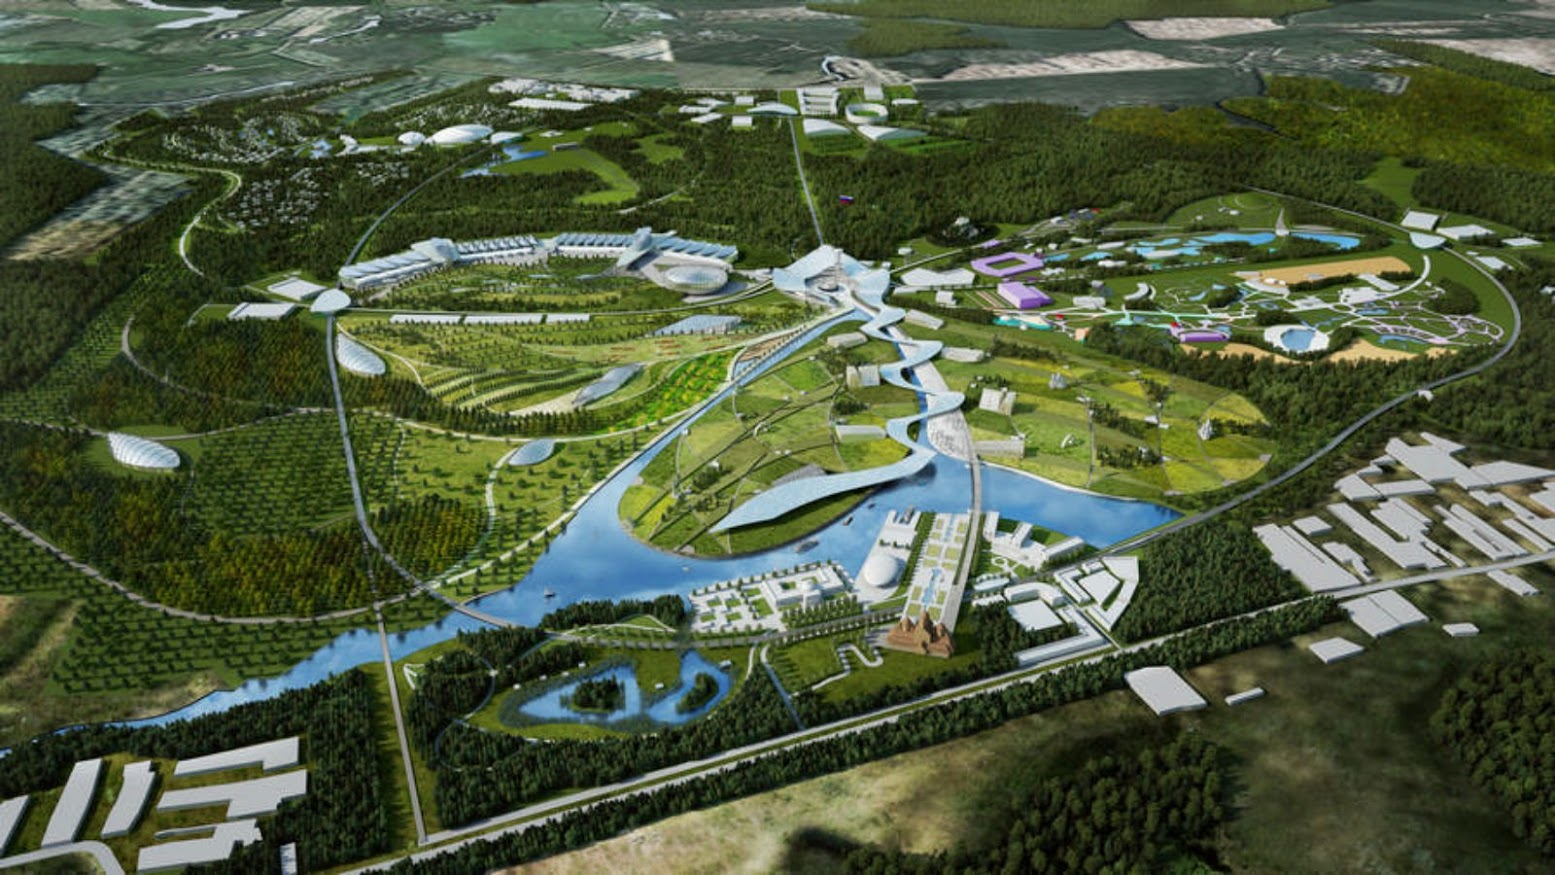 Mosca, Russia: [CUSHMAN & WAKEFIELD CONSORTIUM WINS PARK RUSSIA COMPETITION]